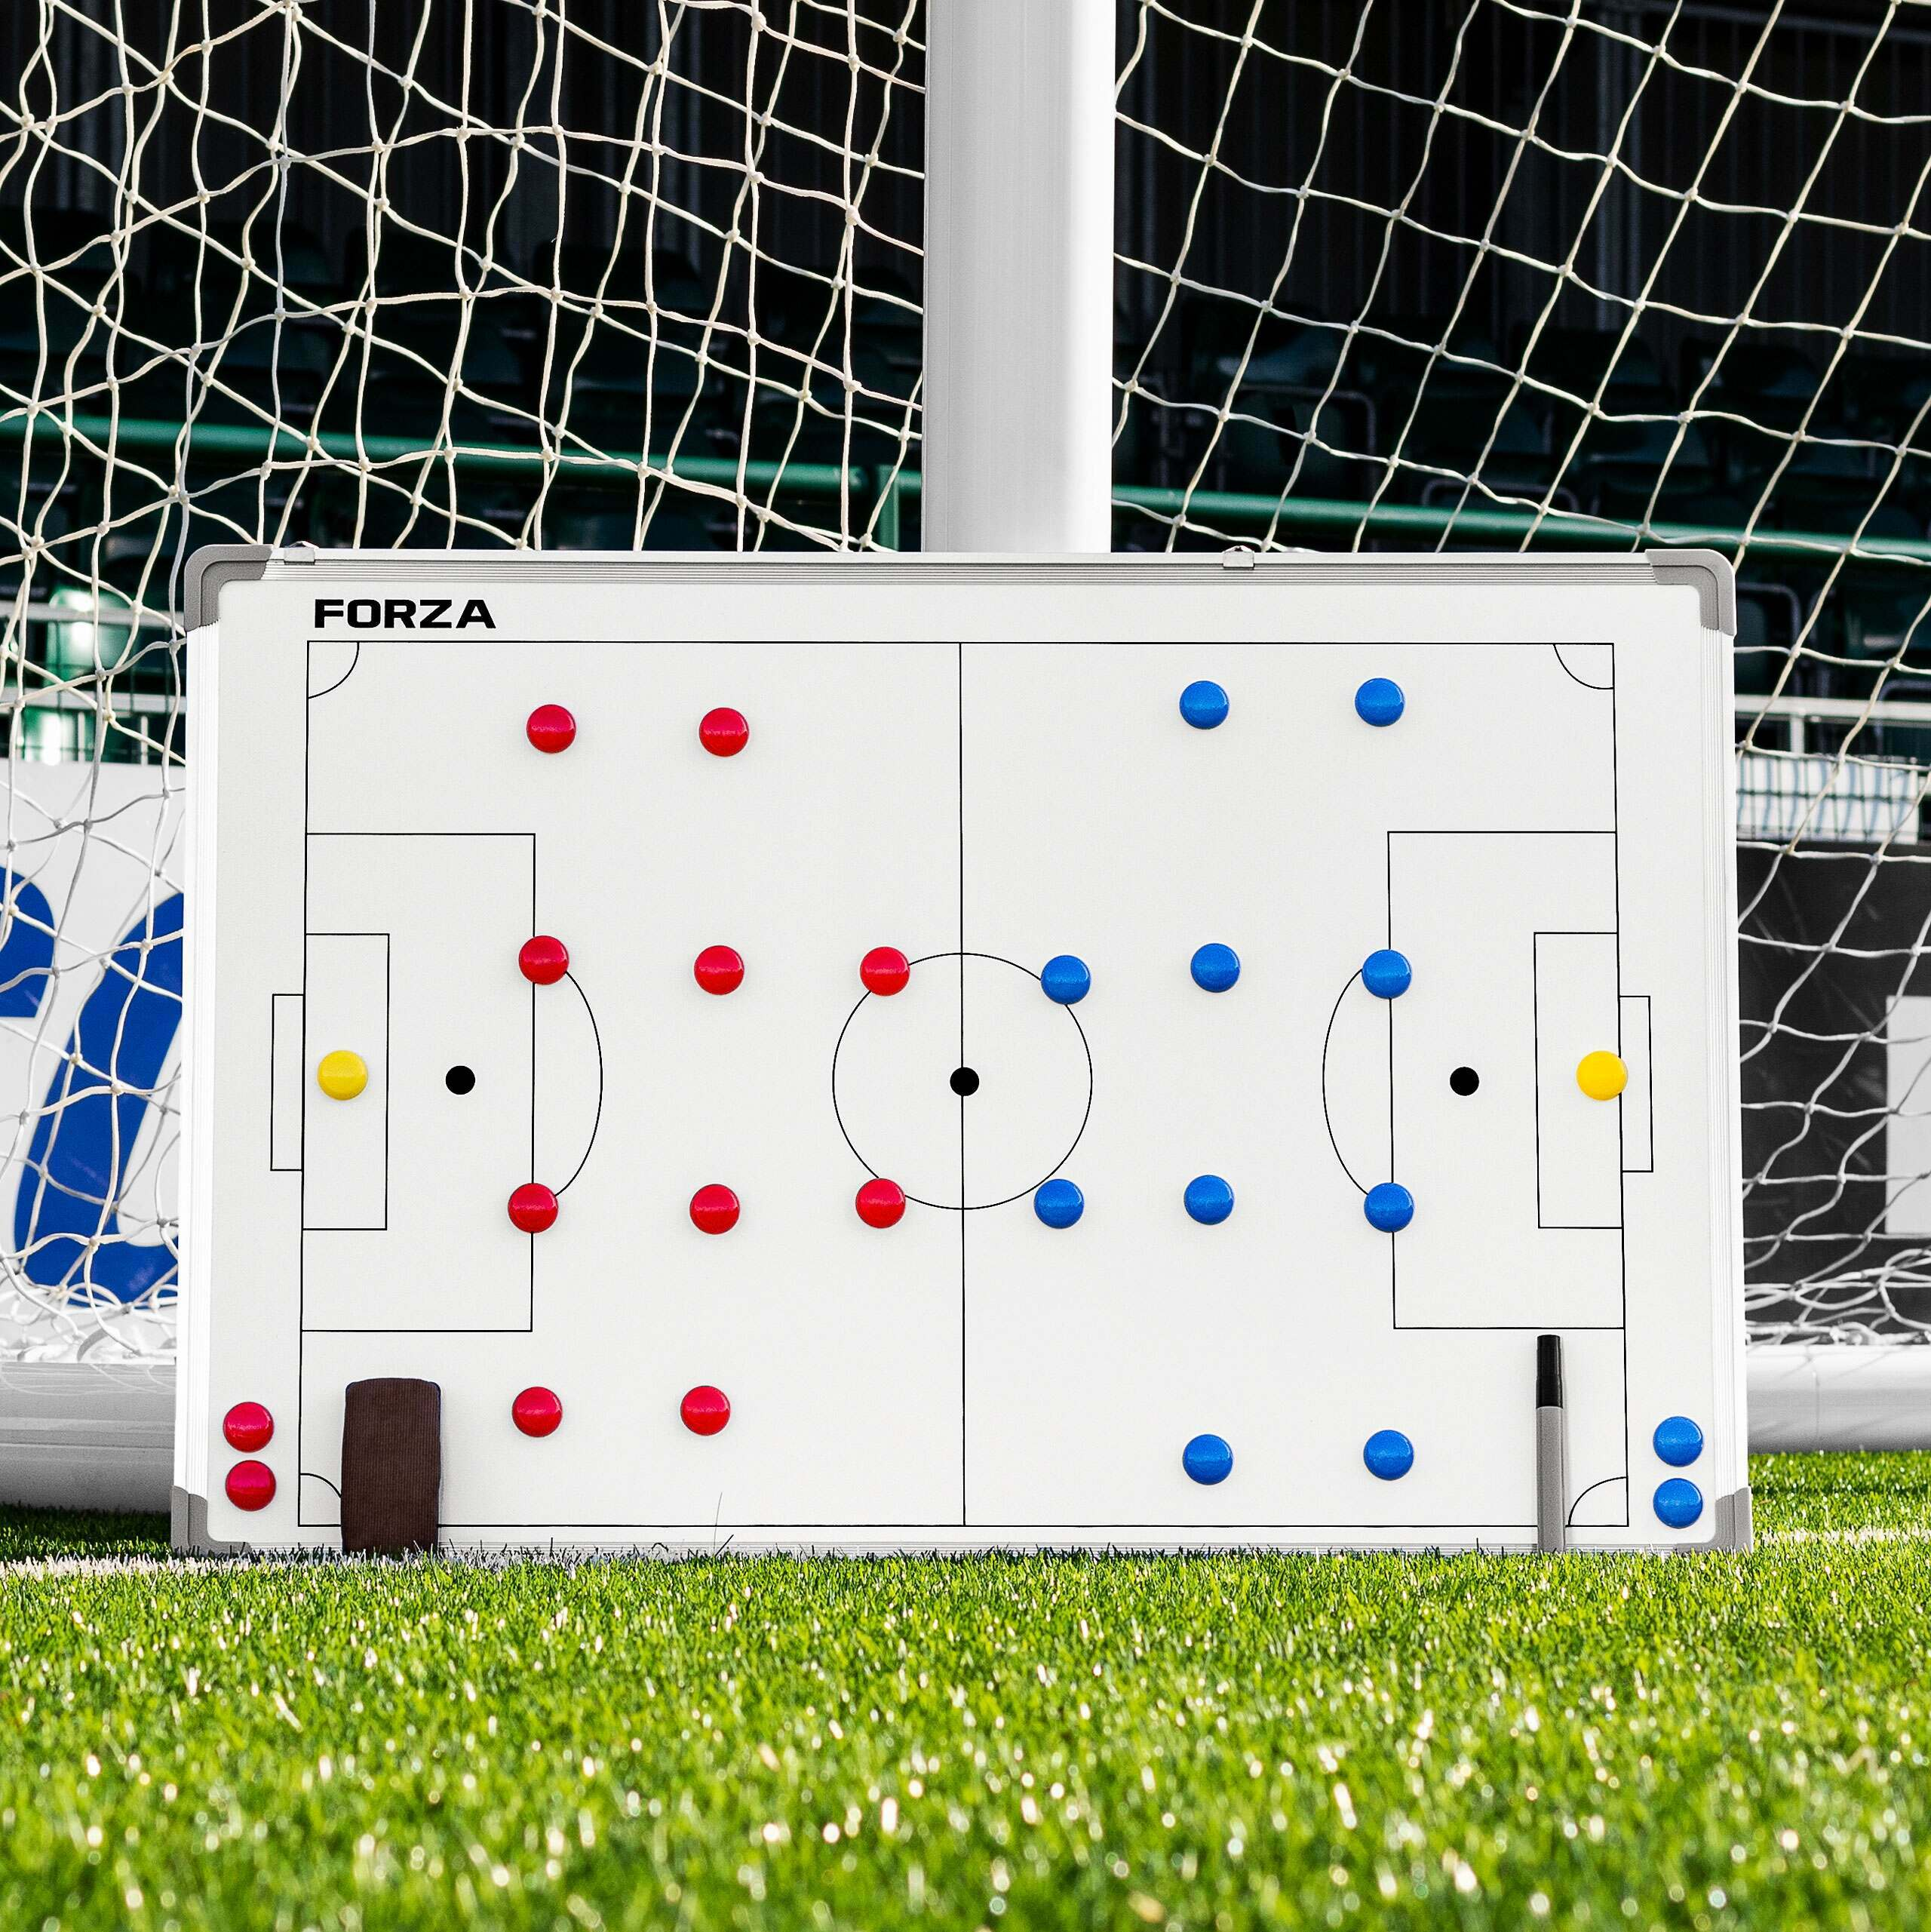 Coaches' & Referees' Gear Precision Pro Soccer Sports Magnetic Futsal Tactic Training Coaching Board & Bag